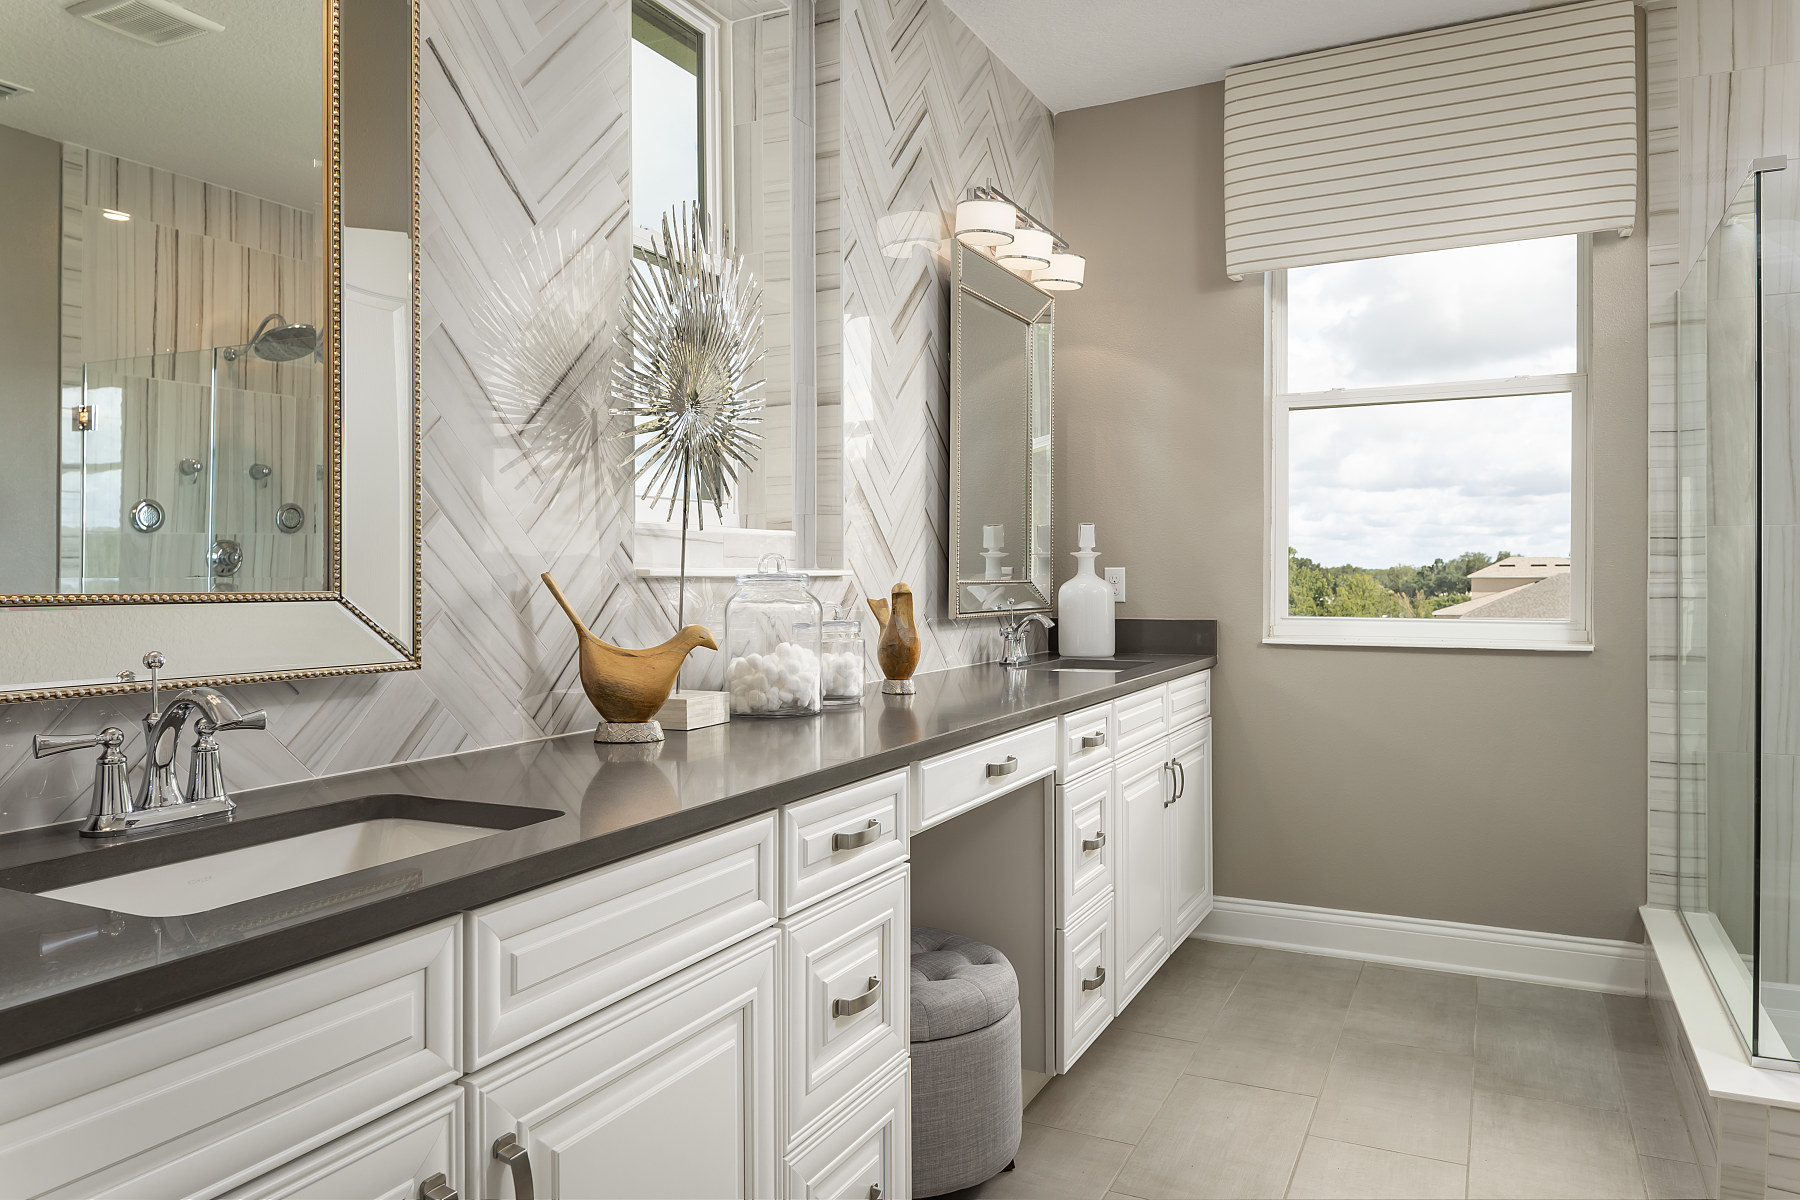 Hull Island Eco Series Owner's Bathroom